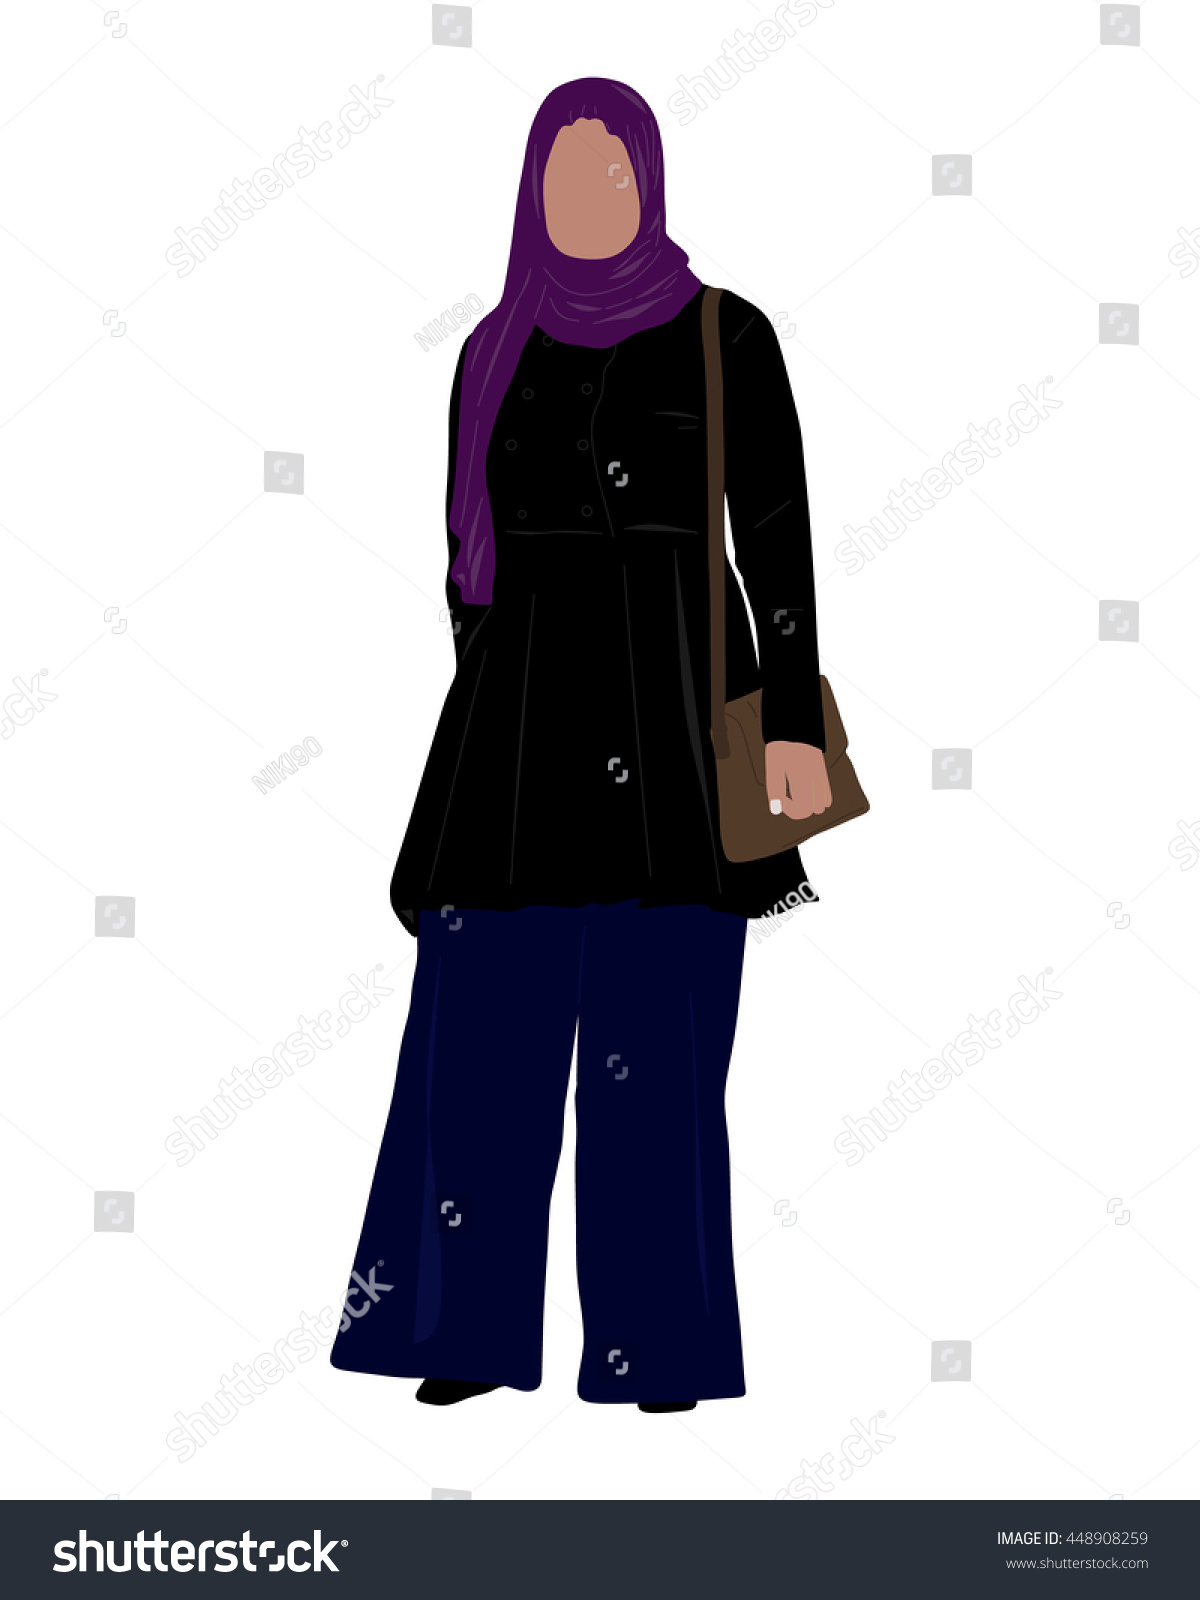 rail road flat muslim women dating site Meet 'aïn trab algerian women for dating and find your true love at muslimacom sign up today and browse profiles of 'aïn trab algerian muslim dating 'aïn trab.